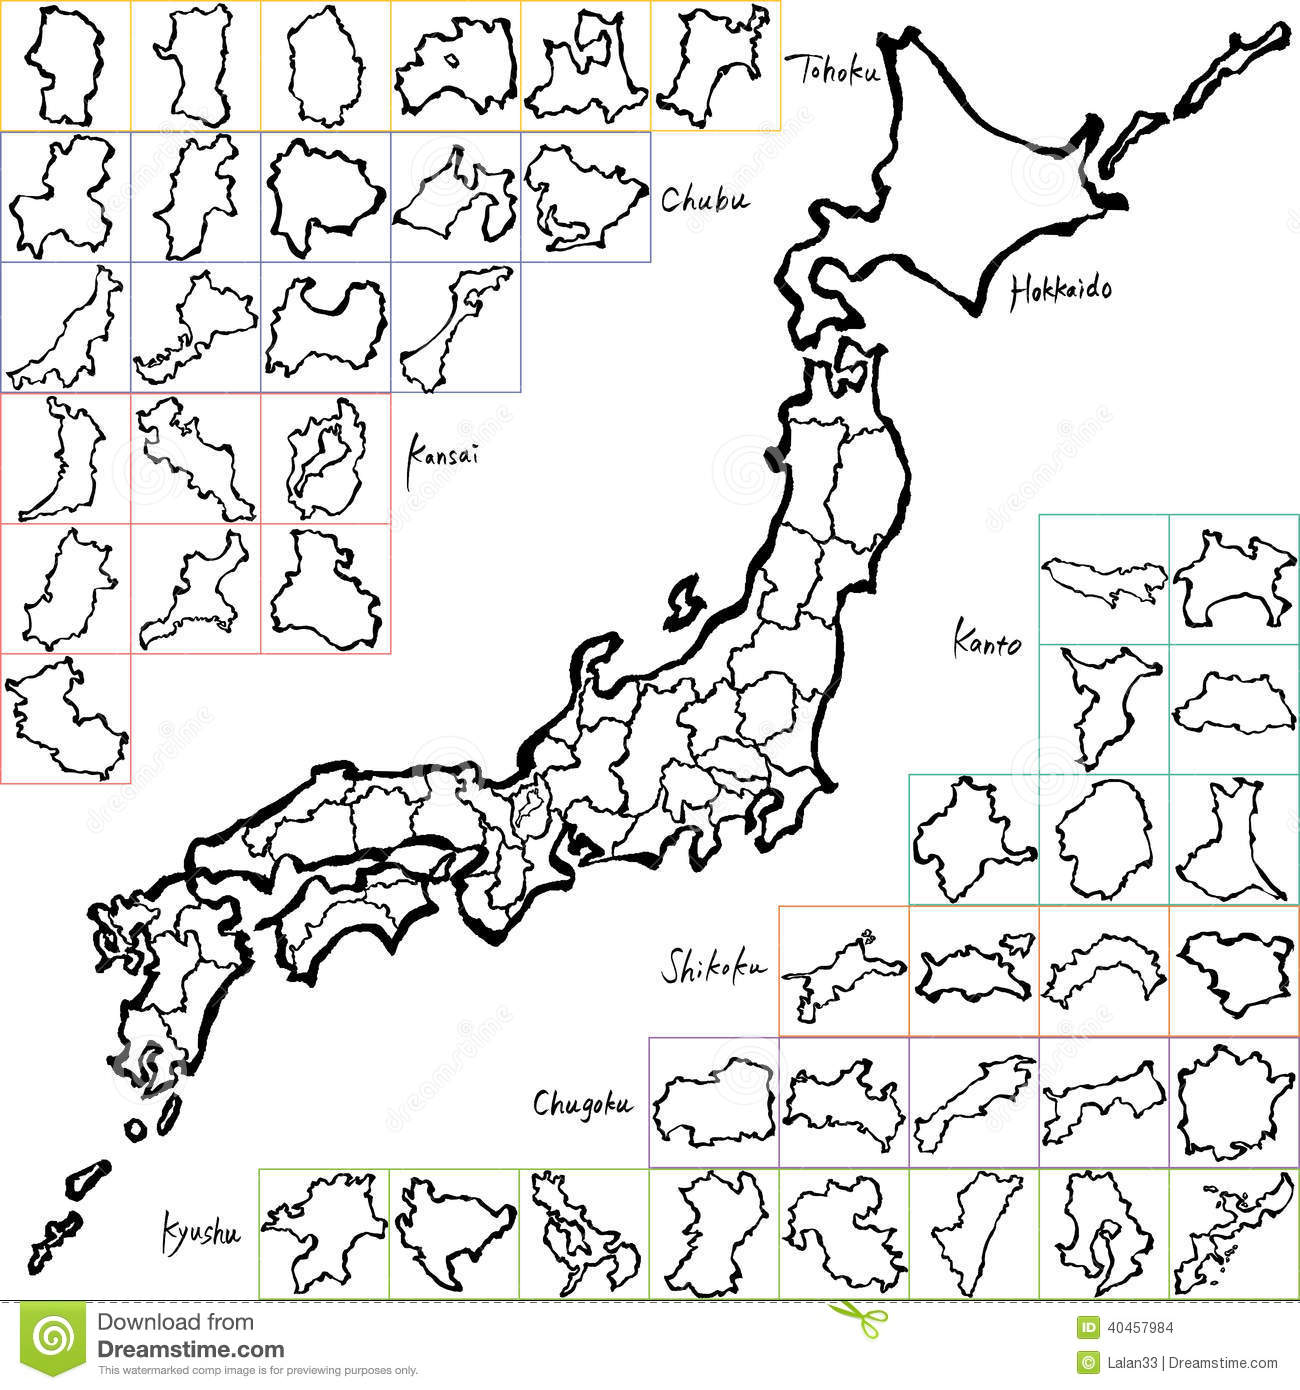 Map Of Japan With Prefectures.Map Of Japanese Prefectures Brush Stroke Line Stock Vector